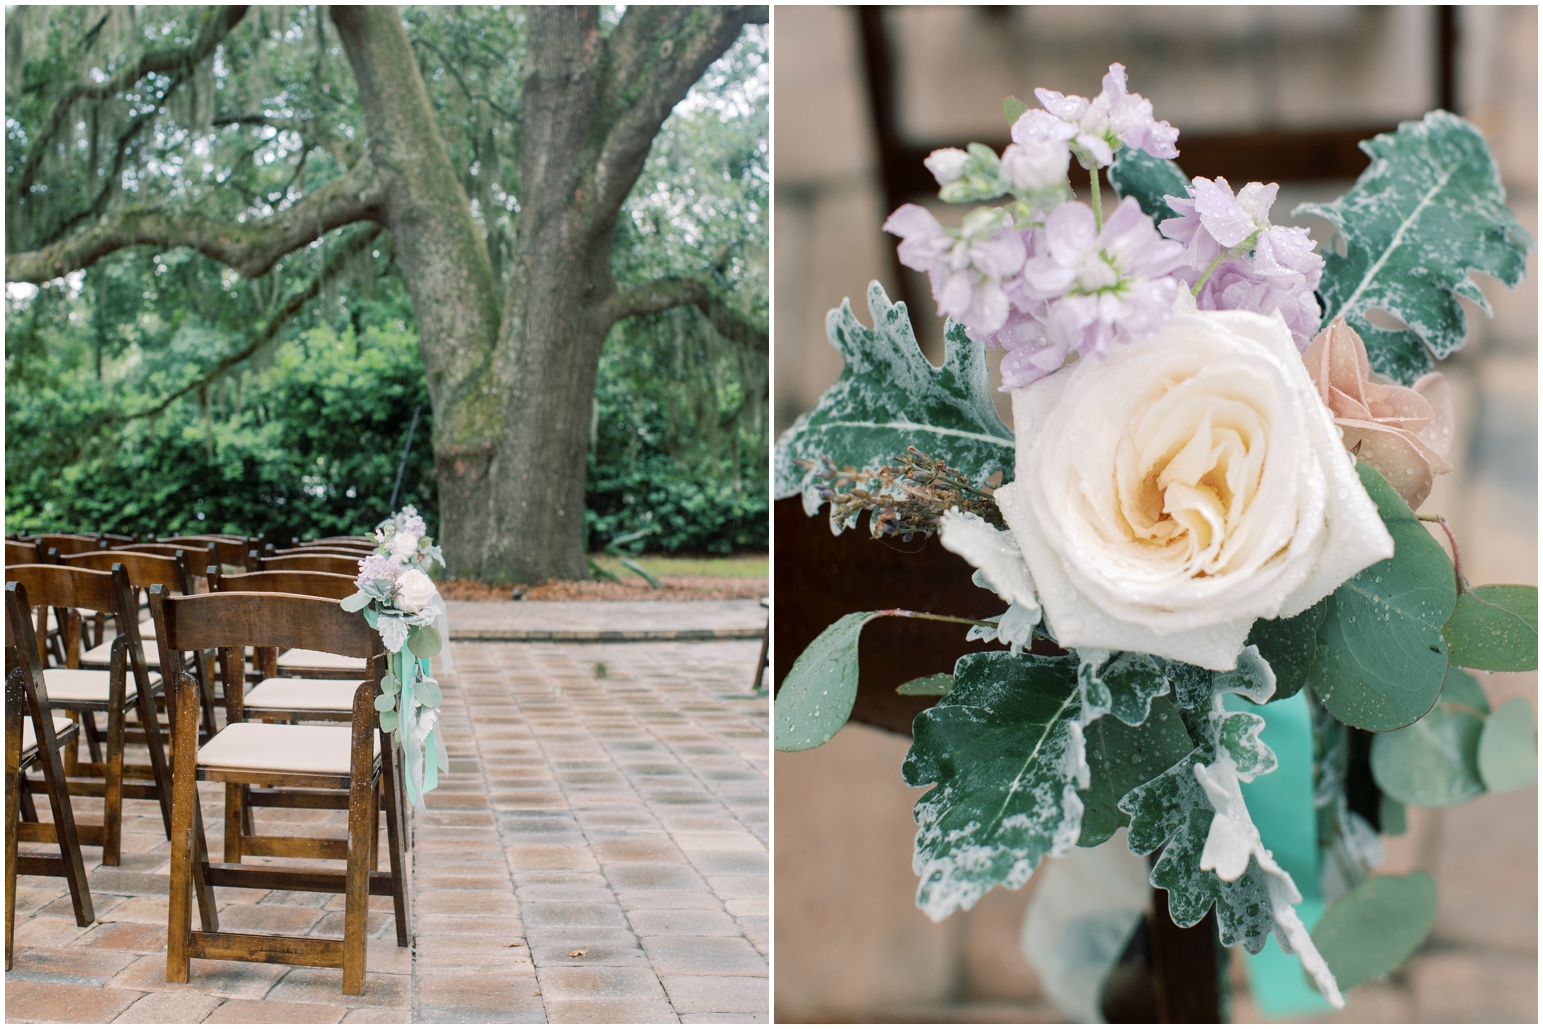 Lisa Silva Photography- Jacksonville, St Augustine, Fernandina Beach, Amelia Island, Ponte Vedra Beach, North East Florida Fine Art Film Photographer- Ashley and Shawn's wedding at bowing oaks plantation_0052.jpg